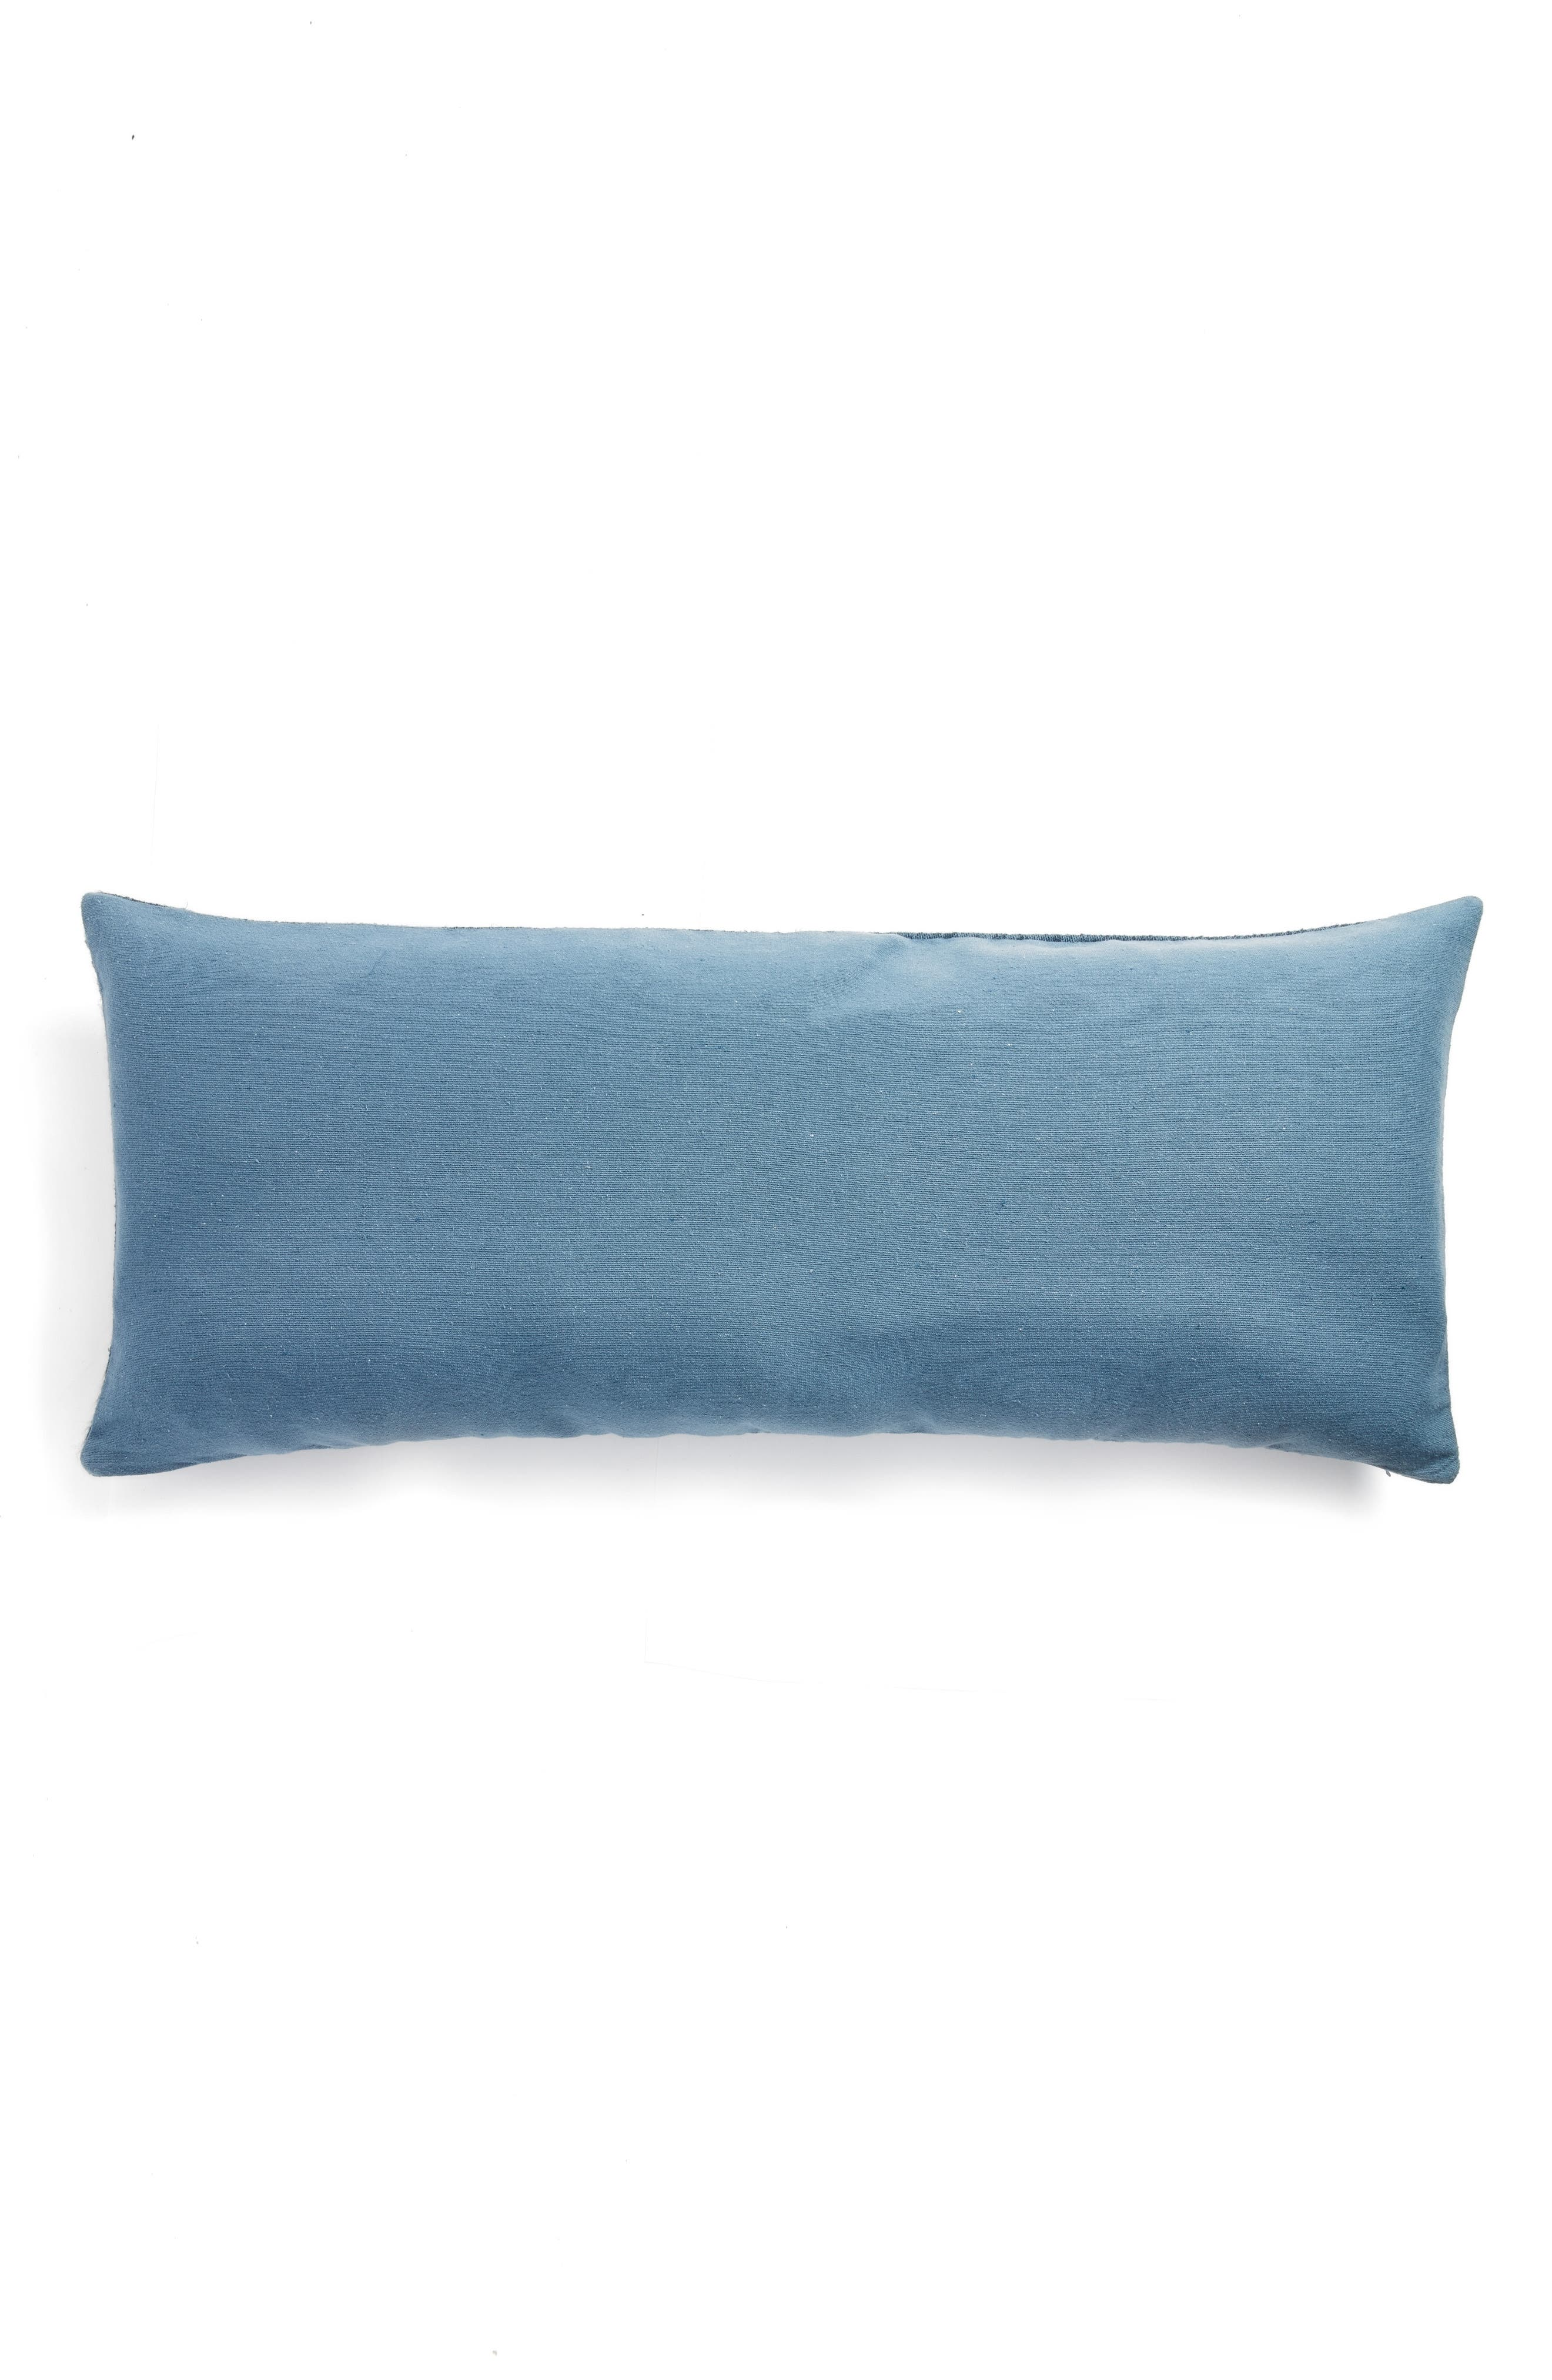 Distressed Geo Accent Pillow,                             Alternate thumbnail 2, color,                             BLUE MIRAGE